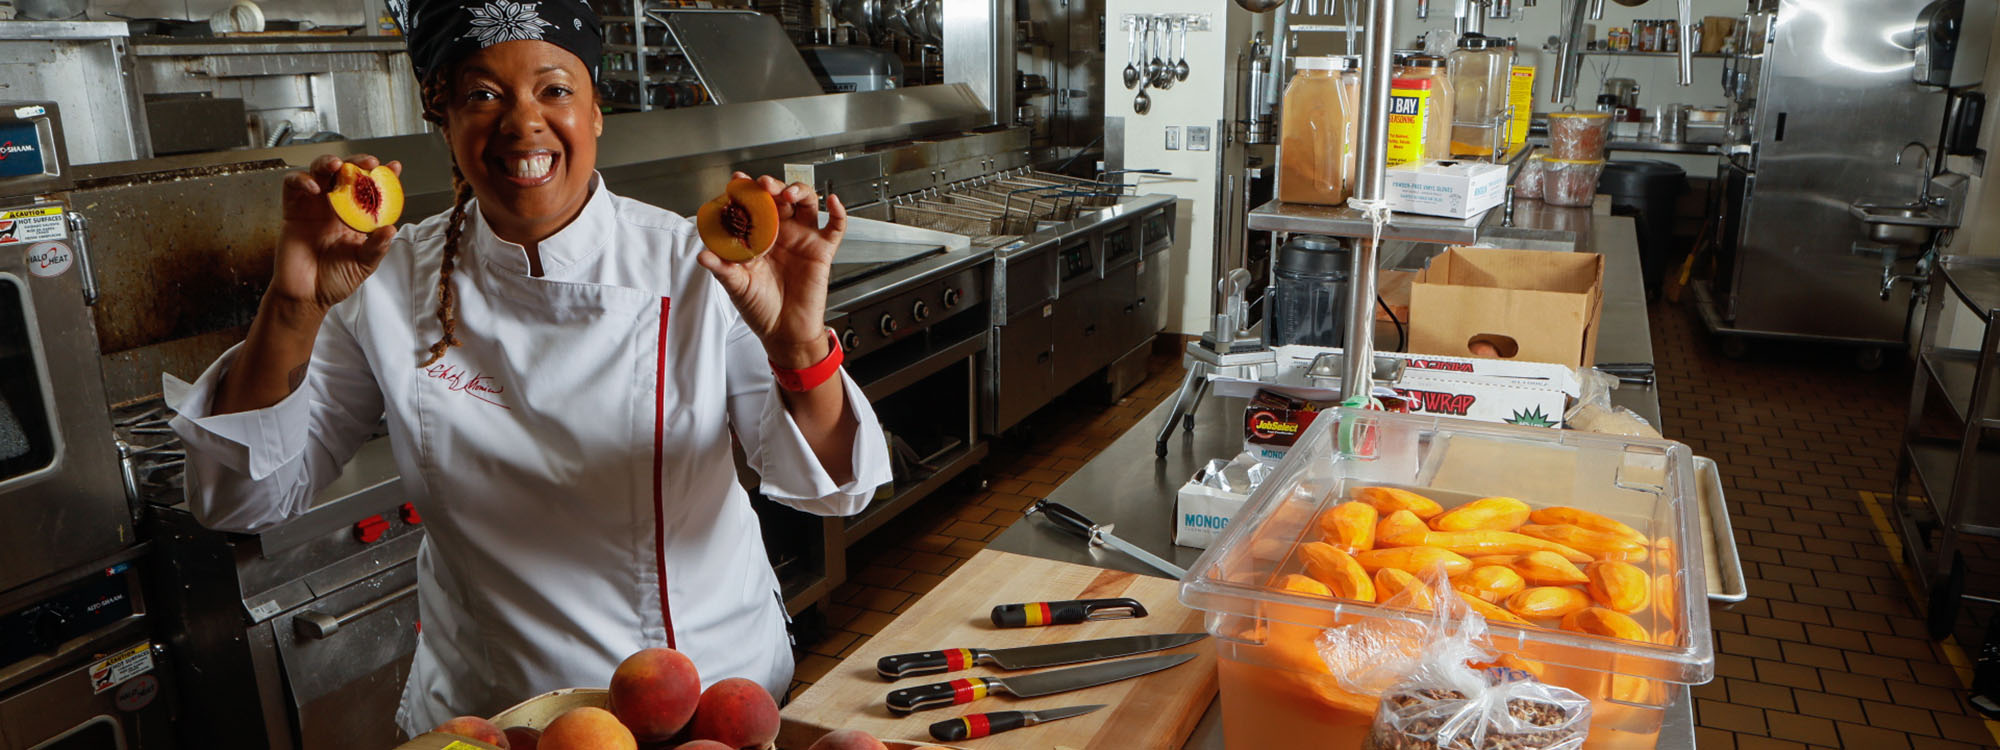 At Appalachian, chef Monica Smith 'put some meat to her love of food'